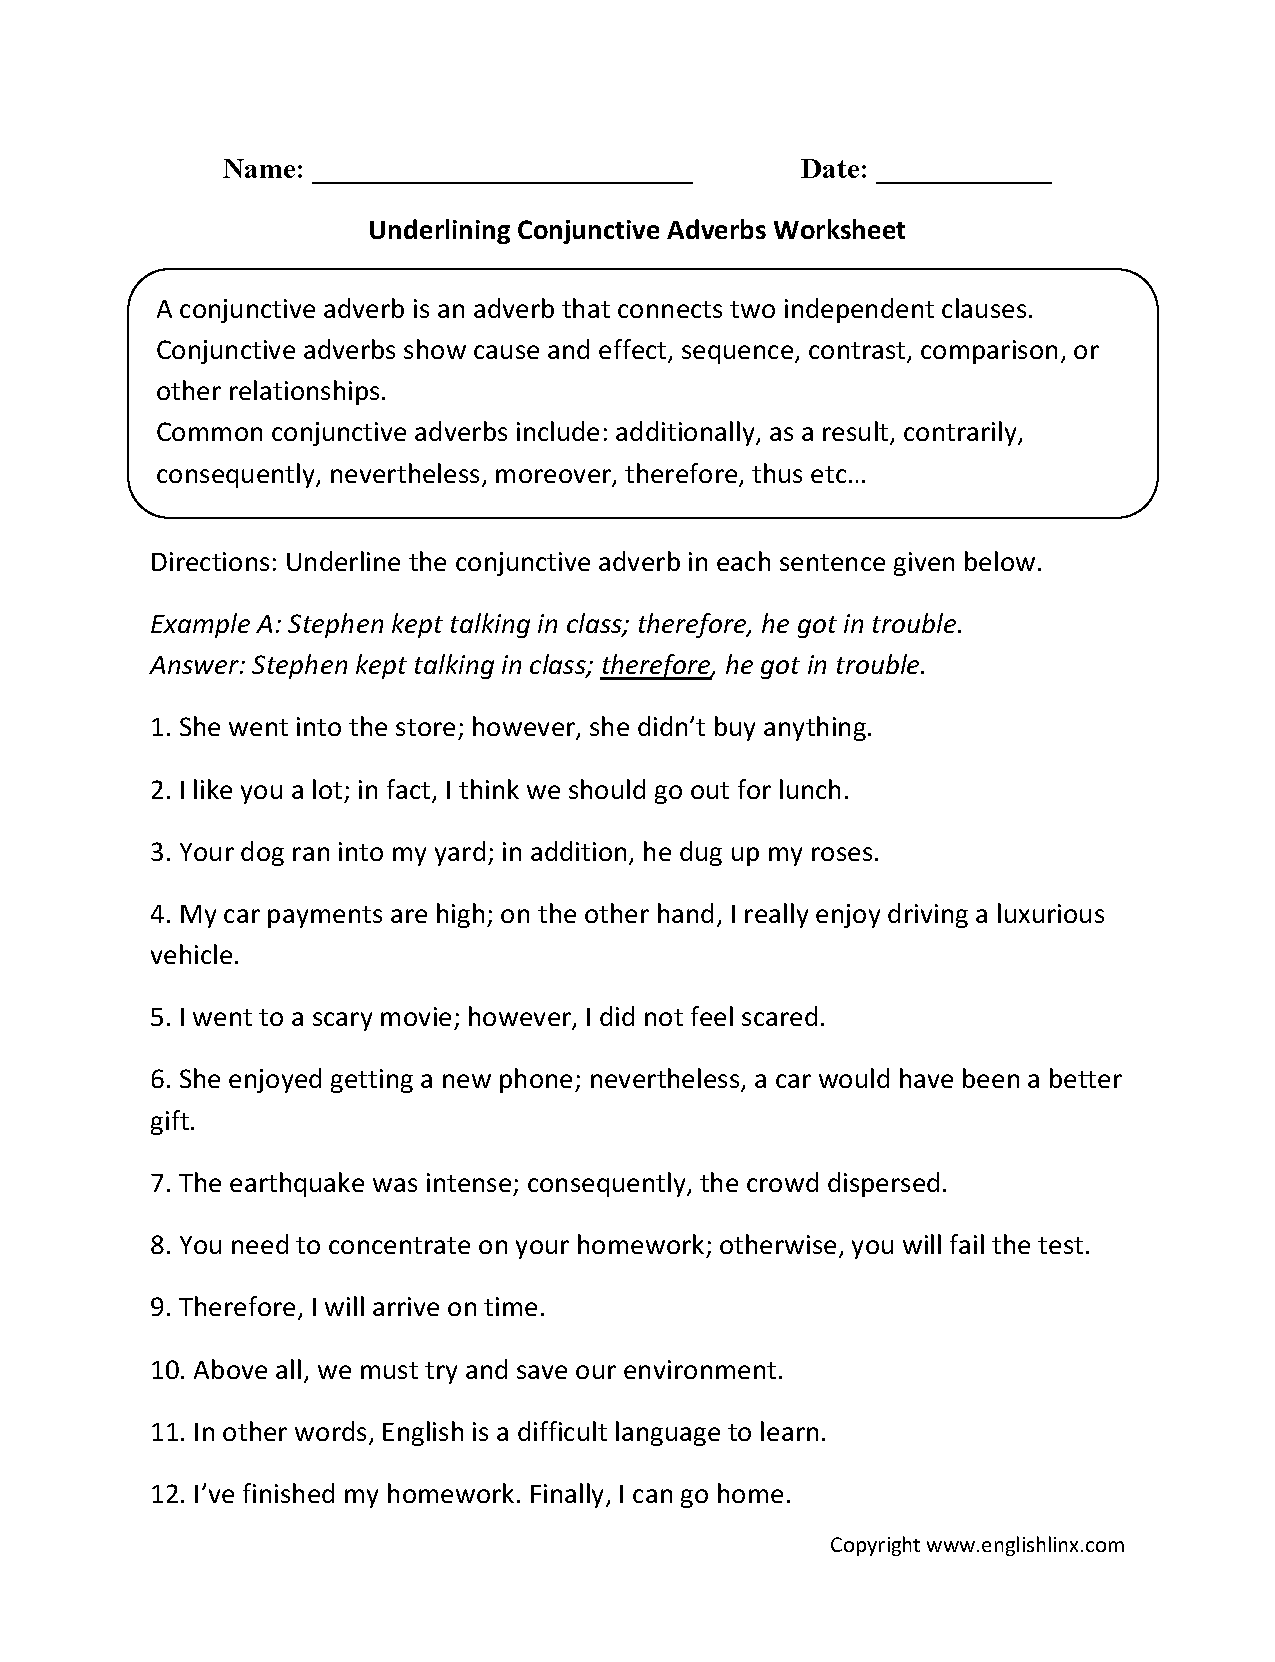 Proatmealus  Marvellous Englishlinxcom  Conjunctions Worksheets With Exciting Worksheet With Adorable Teaching Kids To Tell Time Worksheets Also Algebra Worksheets Generator In Addition Animals And Their Babies Worksheet And Volume Capacity Worksheets As Well As Information Literacy Worksheets Additionally Grade  Writing Worksheets From Englishlinxcom With Proatmealus  Exciting Englishlinxcom  Conjunctions Worksheets With Adorable Worksheet And Marvellous Teaching Kids To Tell Time Worksheets Also Algebra Worksheets Generator In Addition Animals And Their Babies Worksheet From Englishlinxcom